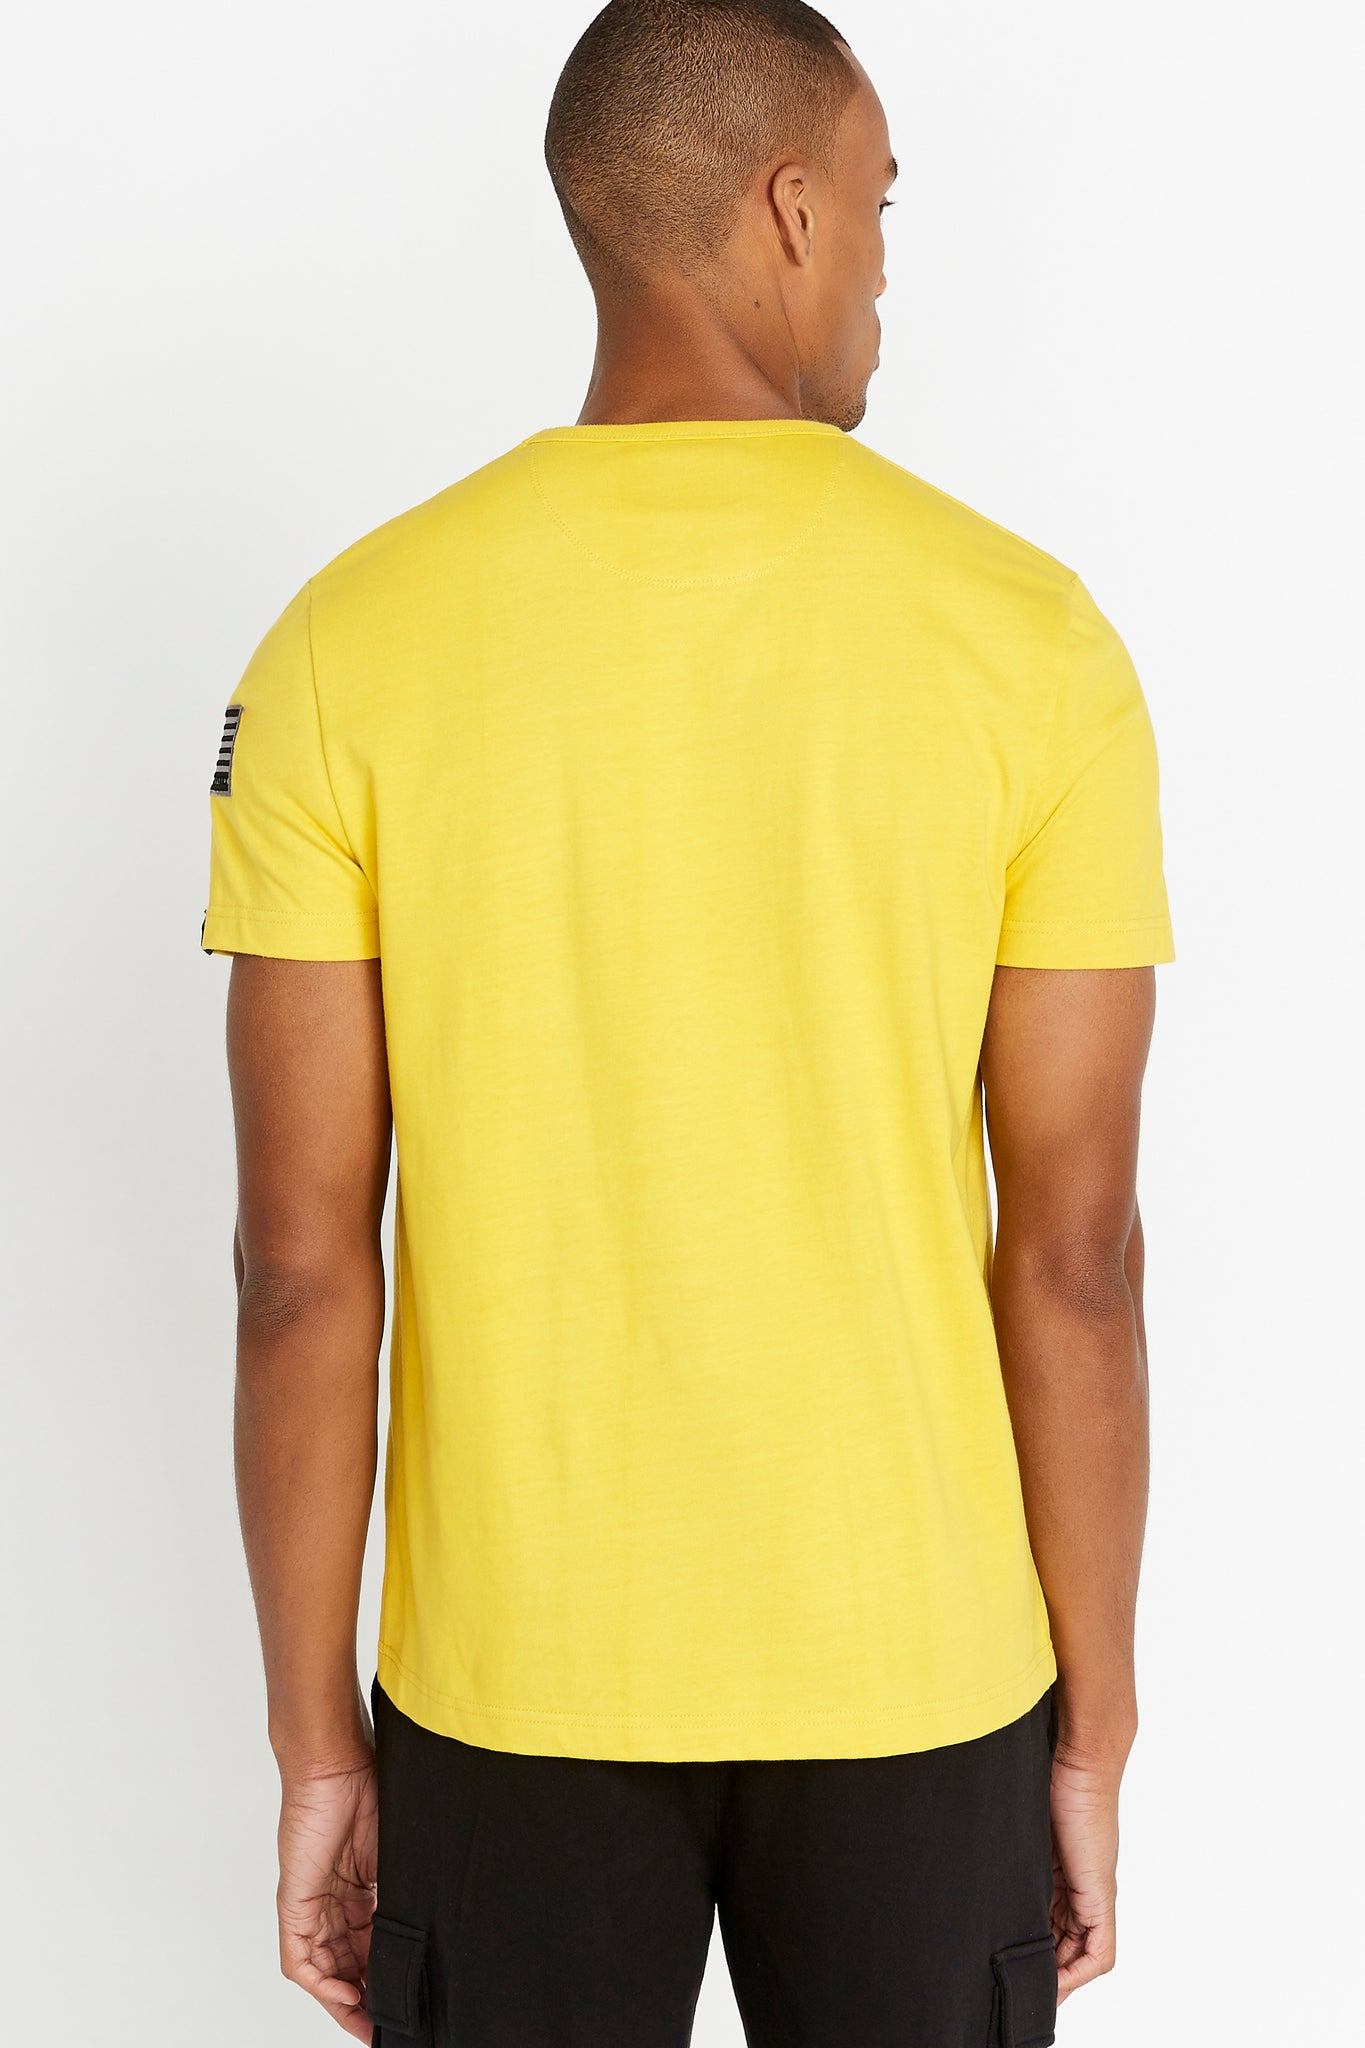 Back view of men wearing a yellow short sleeve crew T-shirt